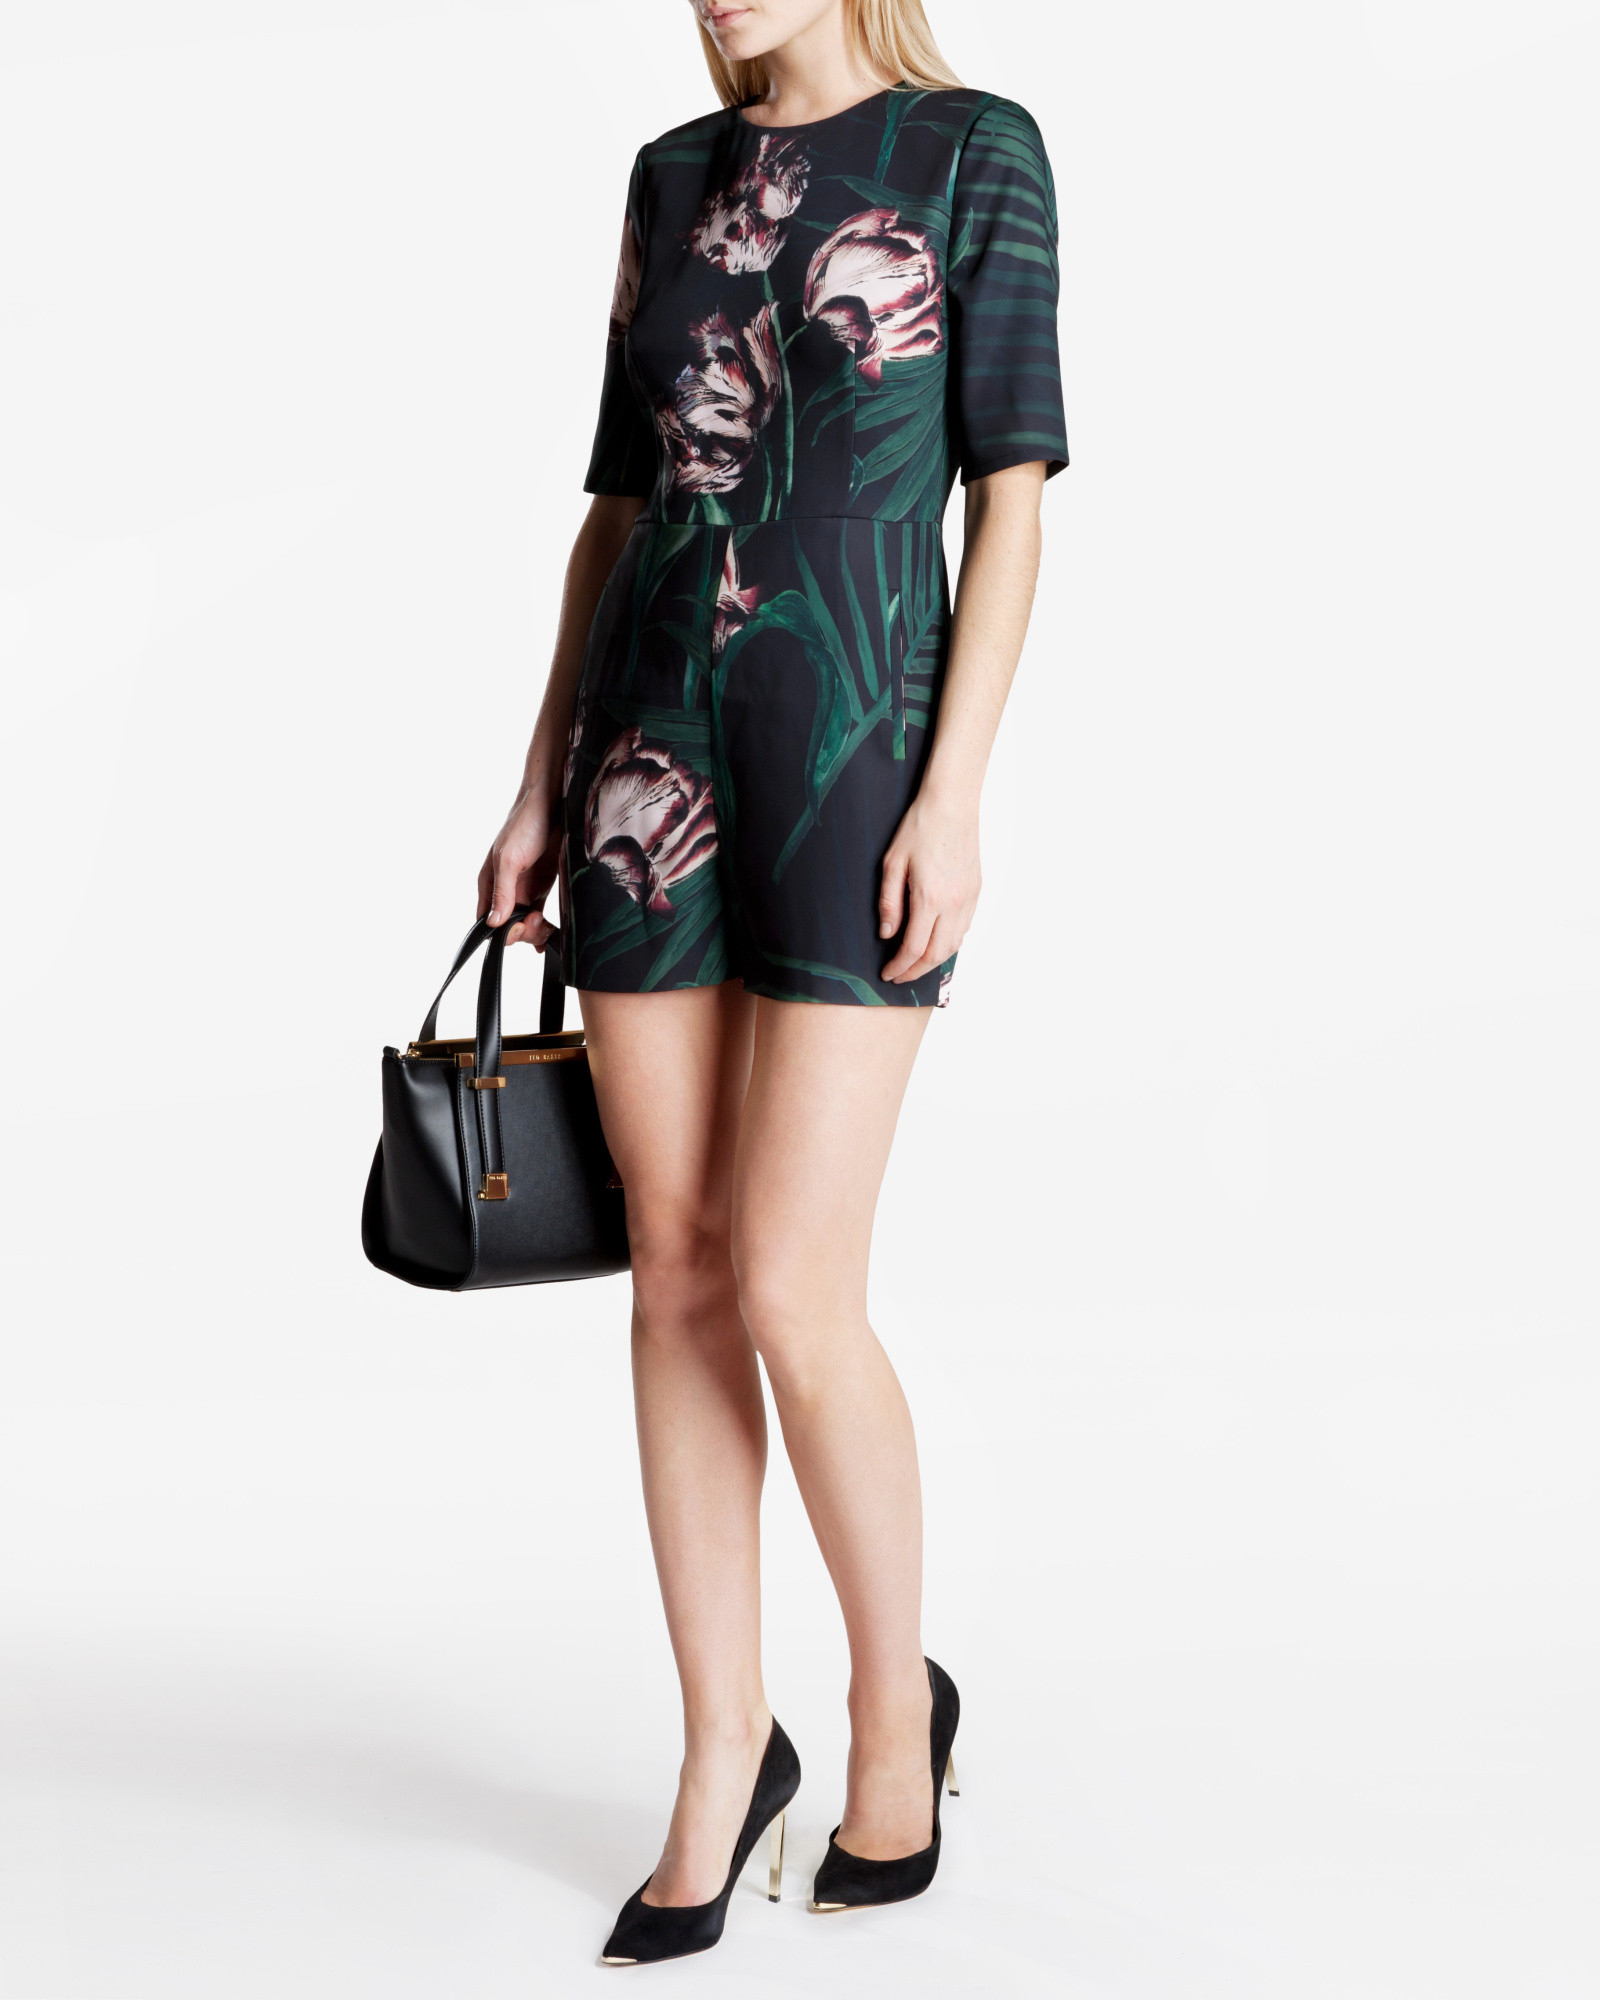 6a5b4d2265c1f Ted Baker Sarena Palm Floral Print Playsuit in Black - Lyst